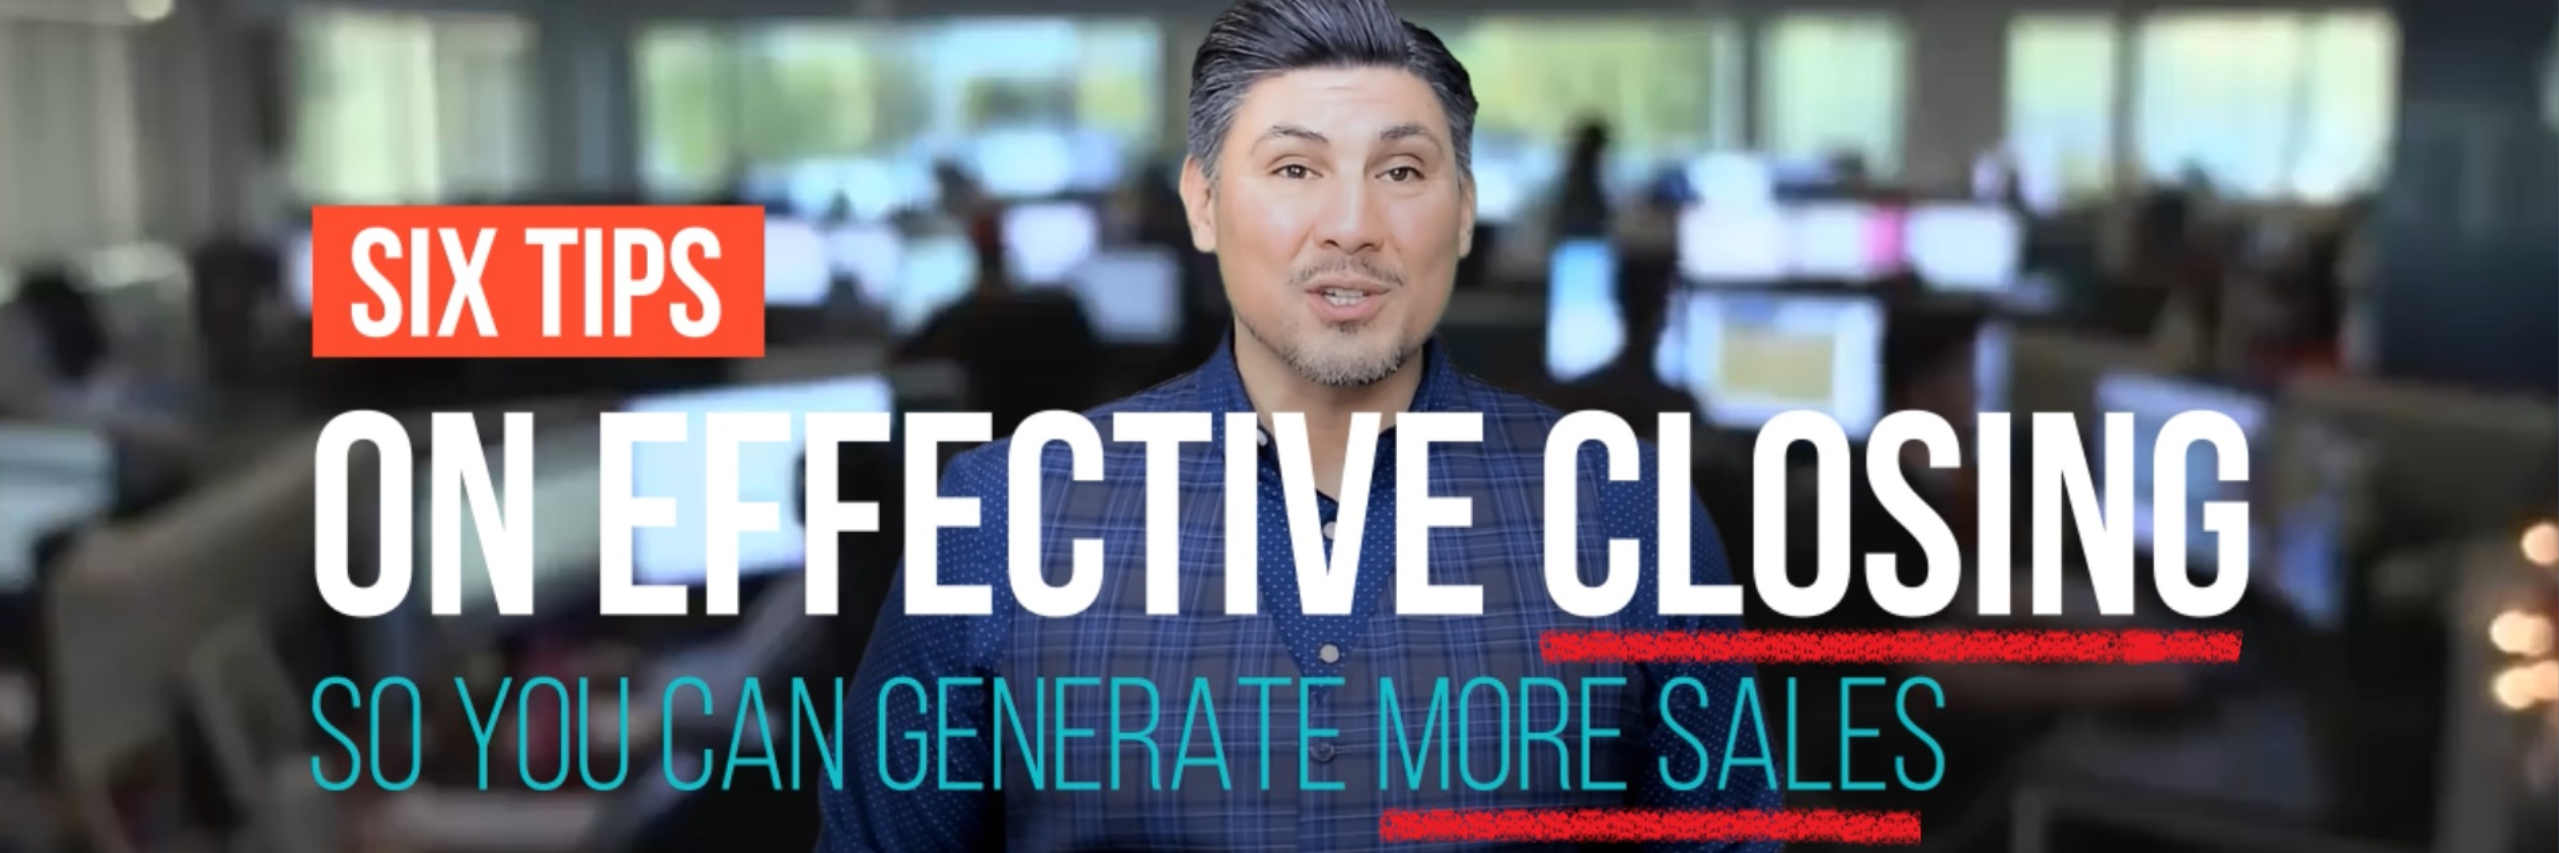 Six Tips On Effective Closing So You Can Generate More Sales